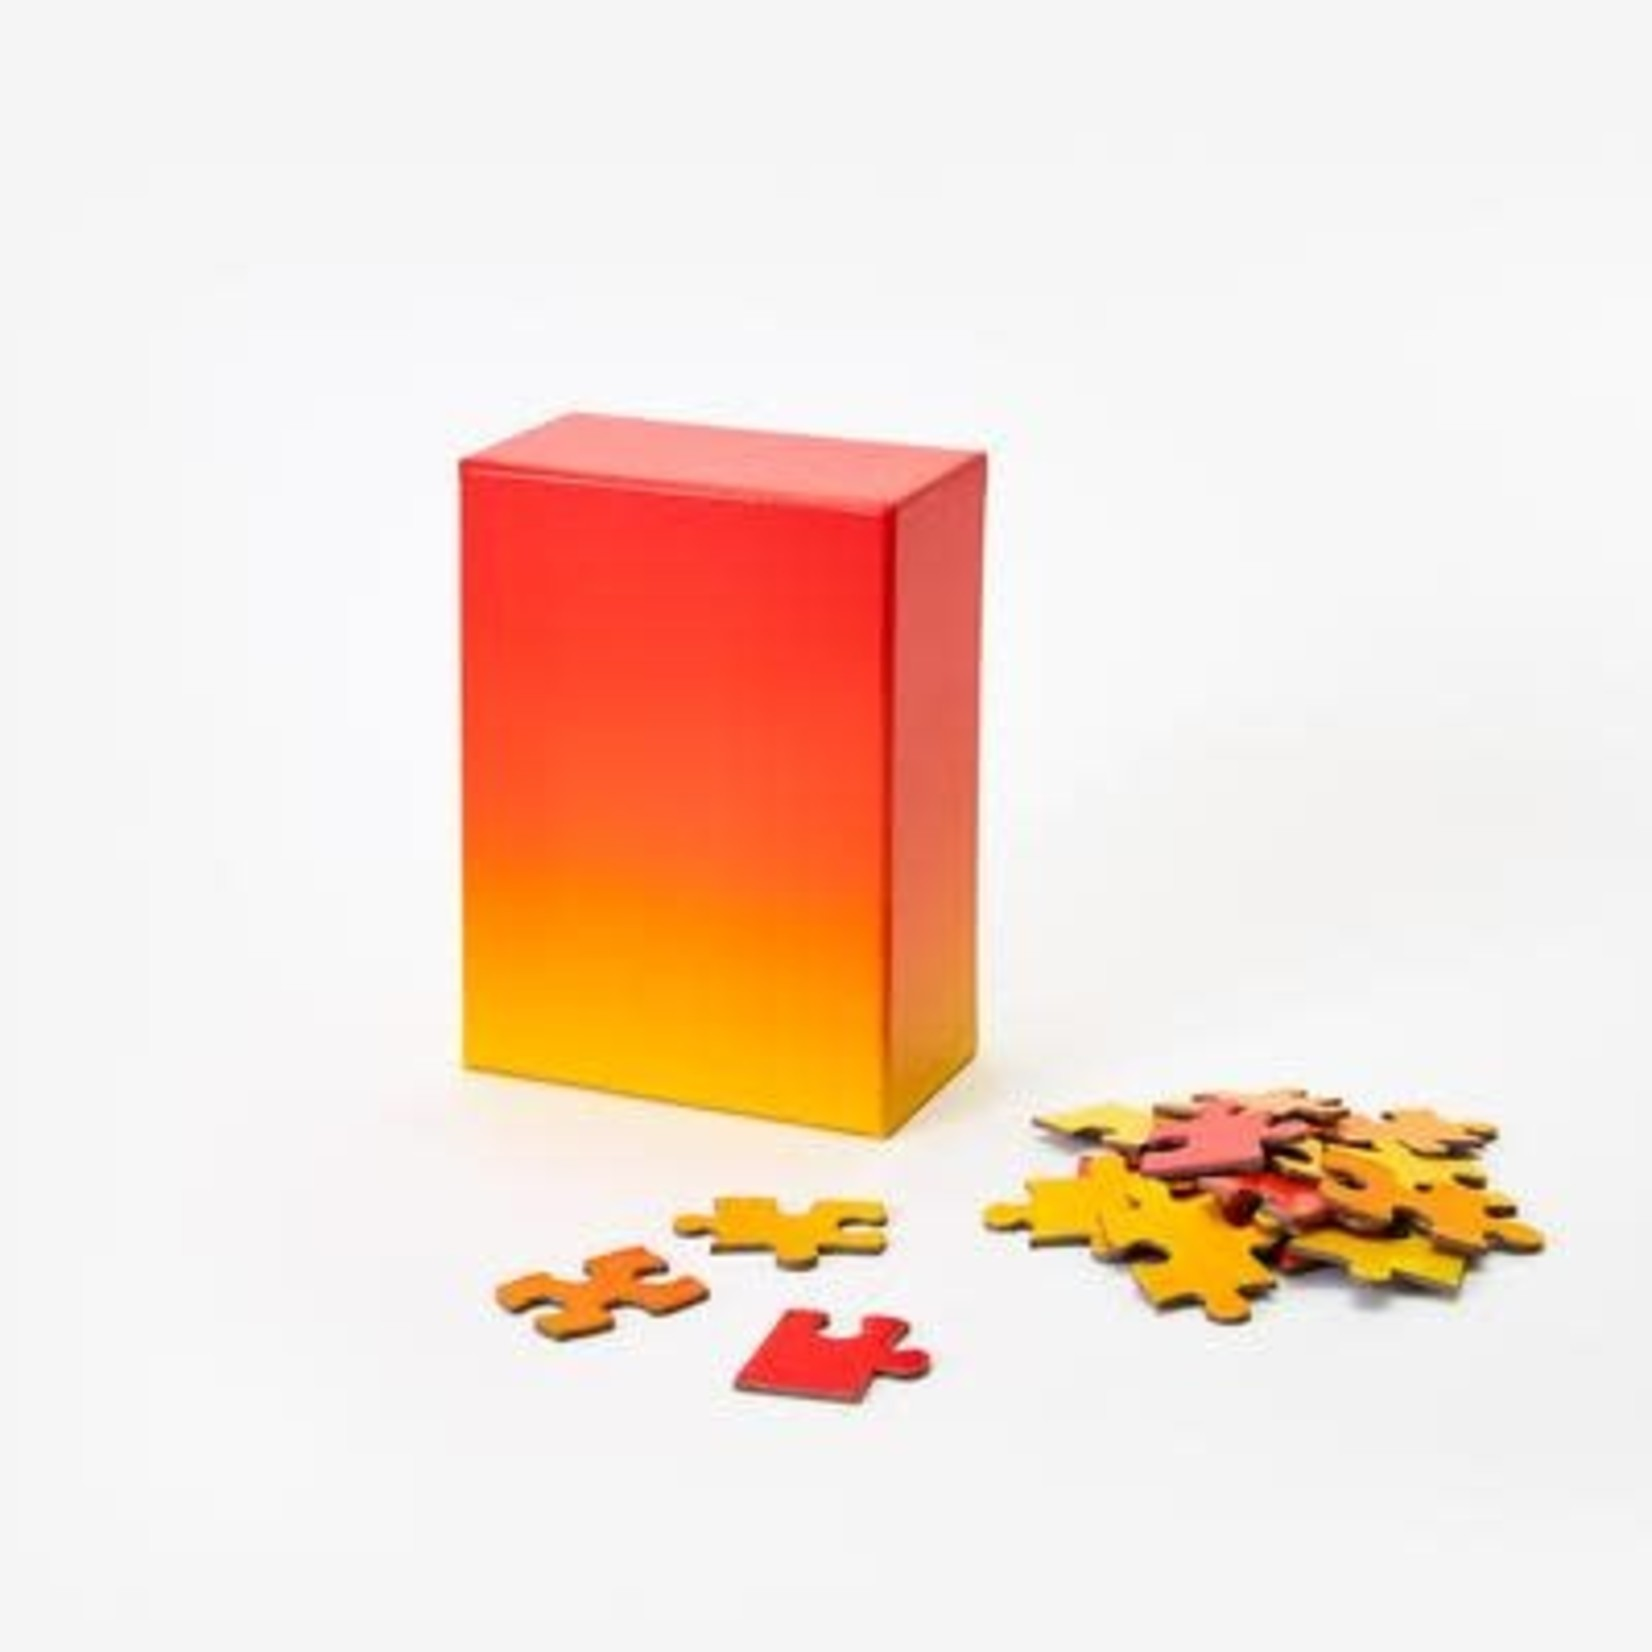 Areaware Areaware Gradient Puzzle Small - More Options Available